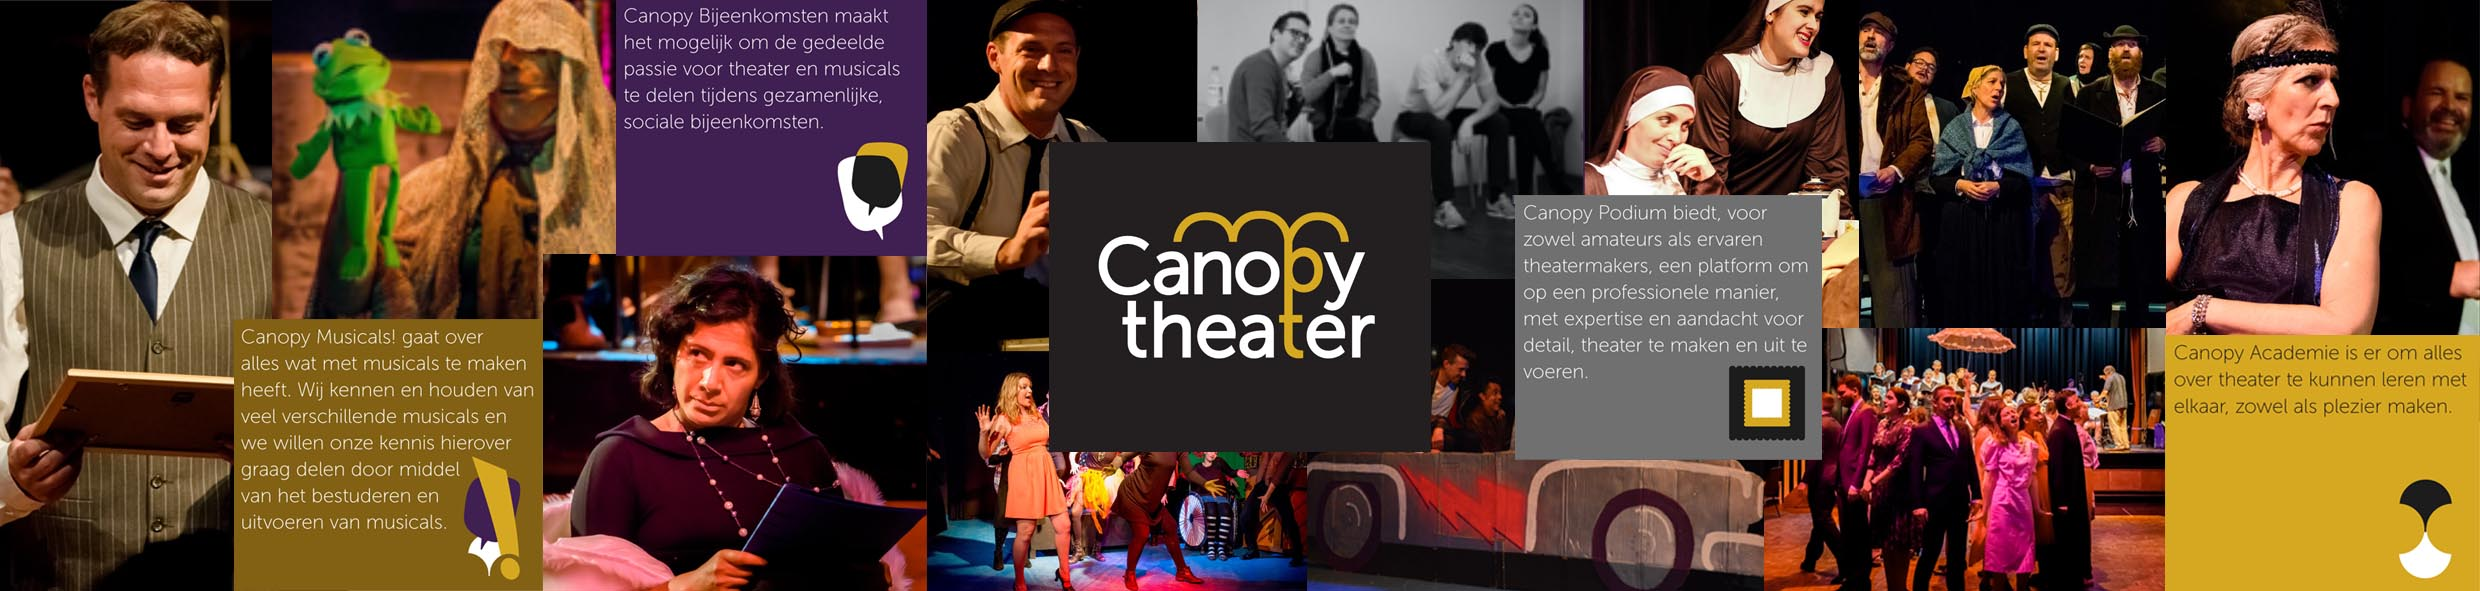 banner_canopy_theater